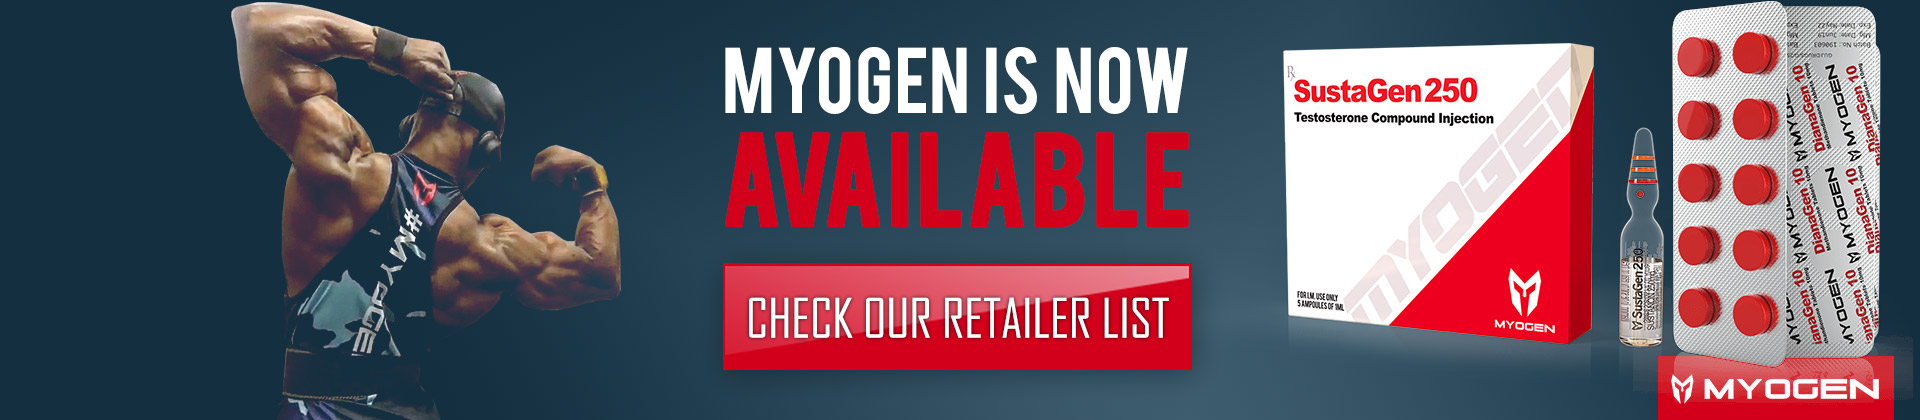 banner-home-myogen-desktop-myogen-available